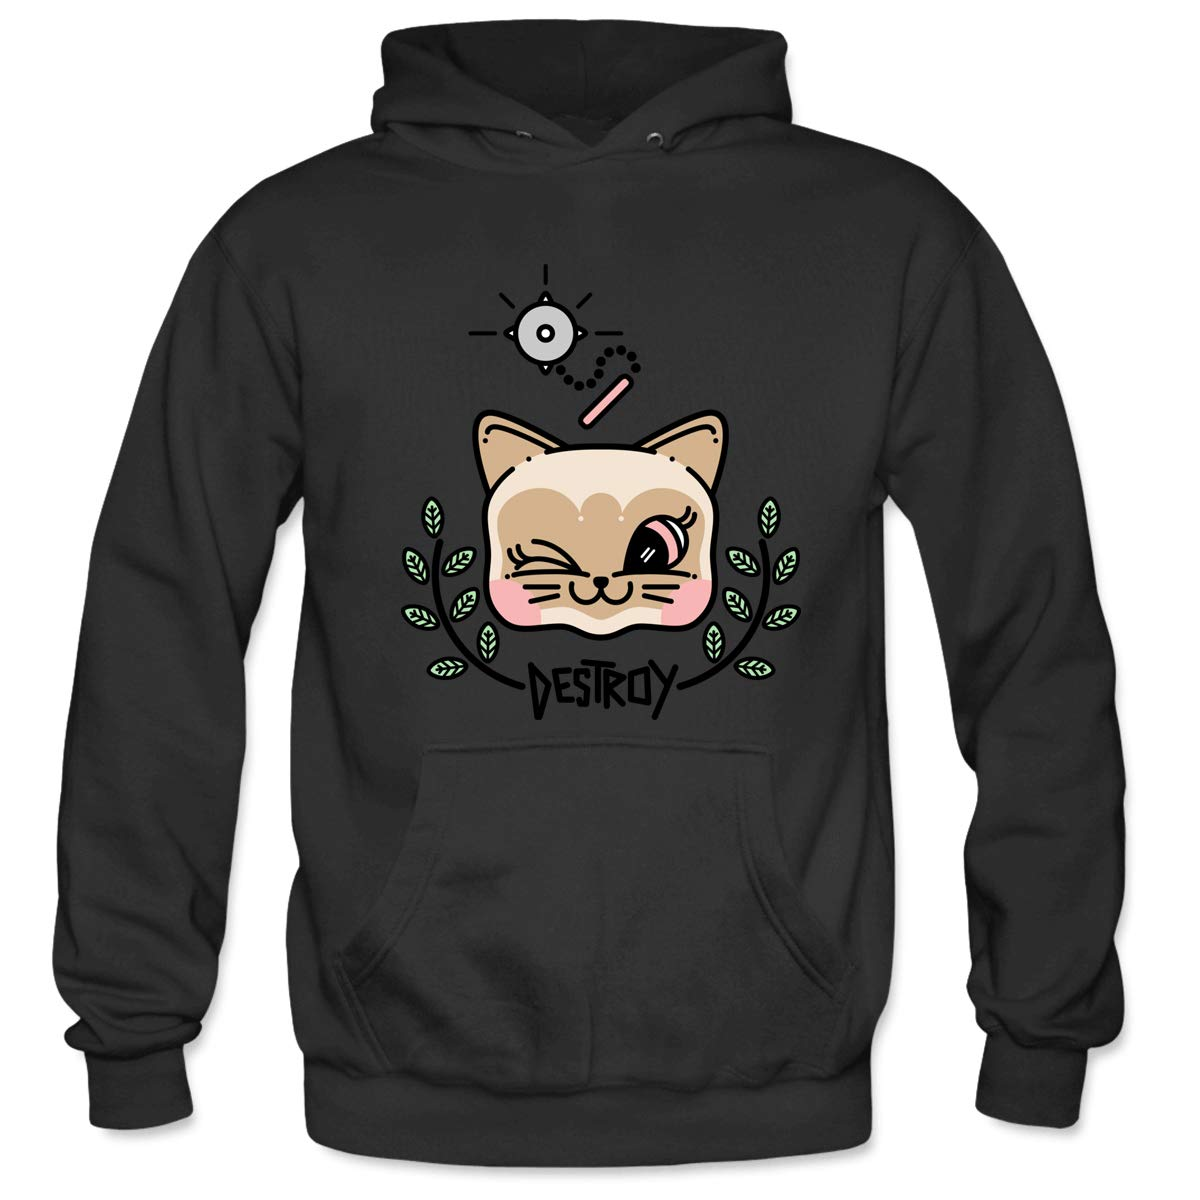 Mens Destroy Kitty Hooded Sweatshirt Funny Printed Pullover Hoodies Classic Long Sleeve T Shirt Tops